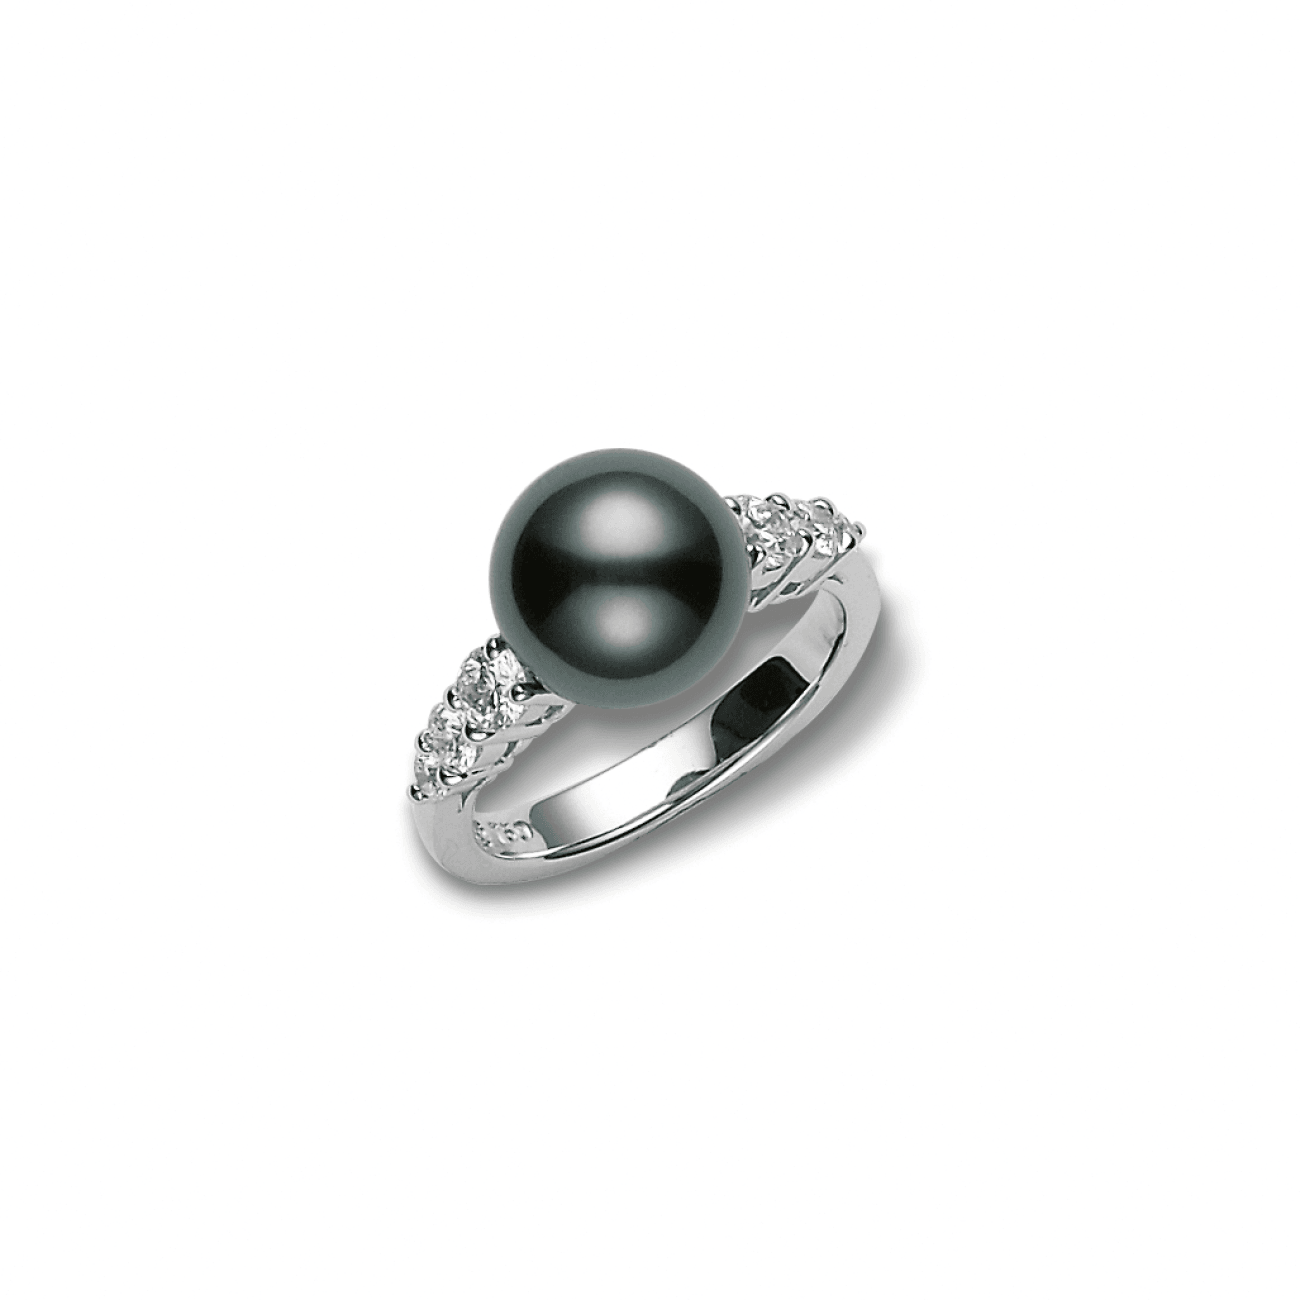 Mikimoto Jewelry - 18K White Gold 9mm Tahitian Grey Cultured Pearl Ring with Diamonds | Manfredi Jewels